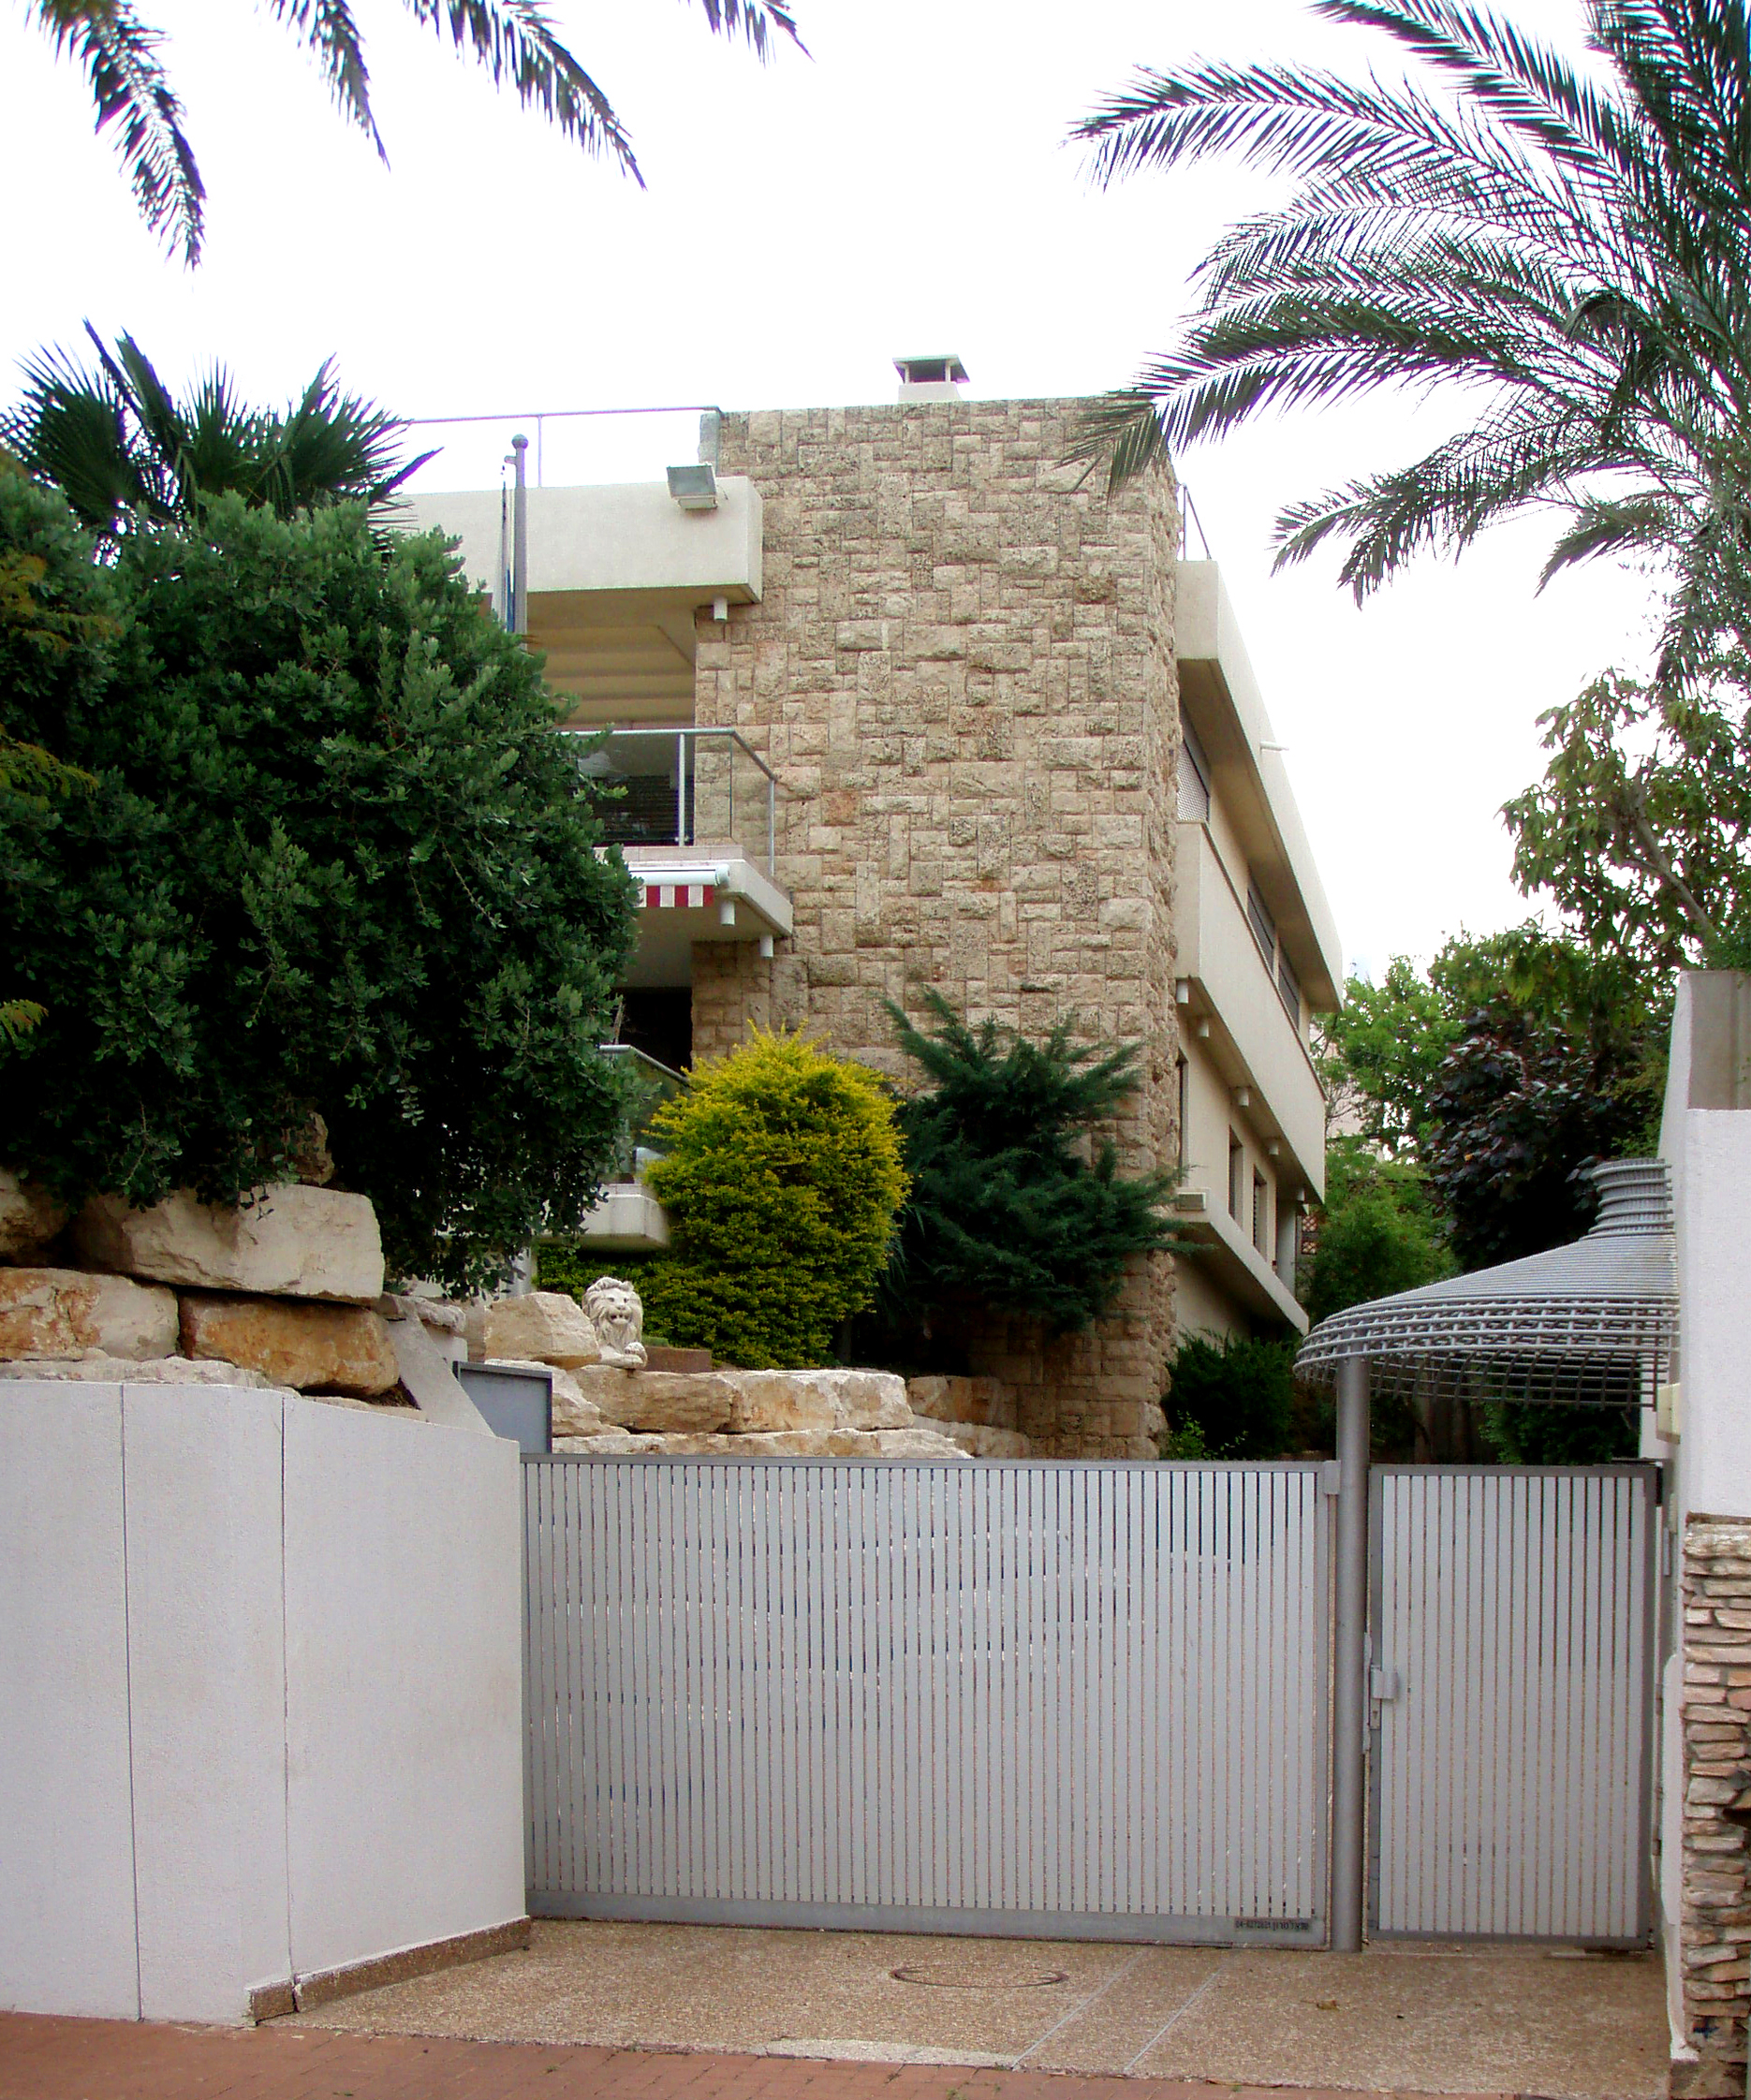 contractor private homes israel